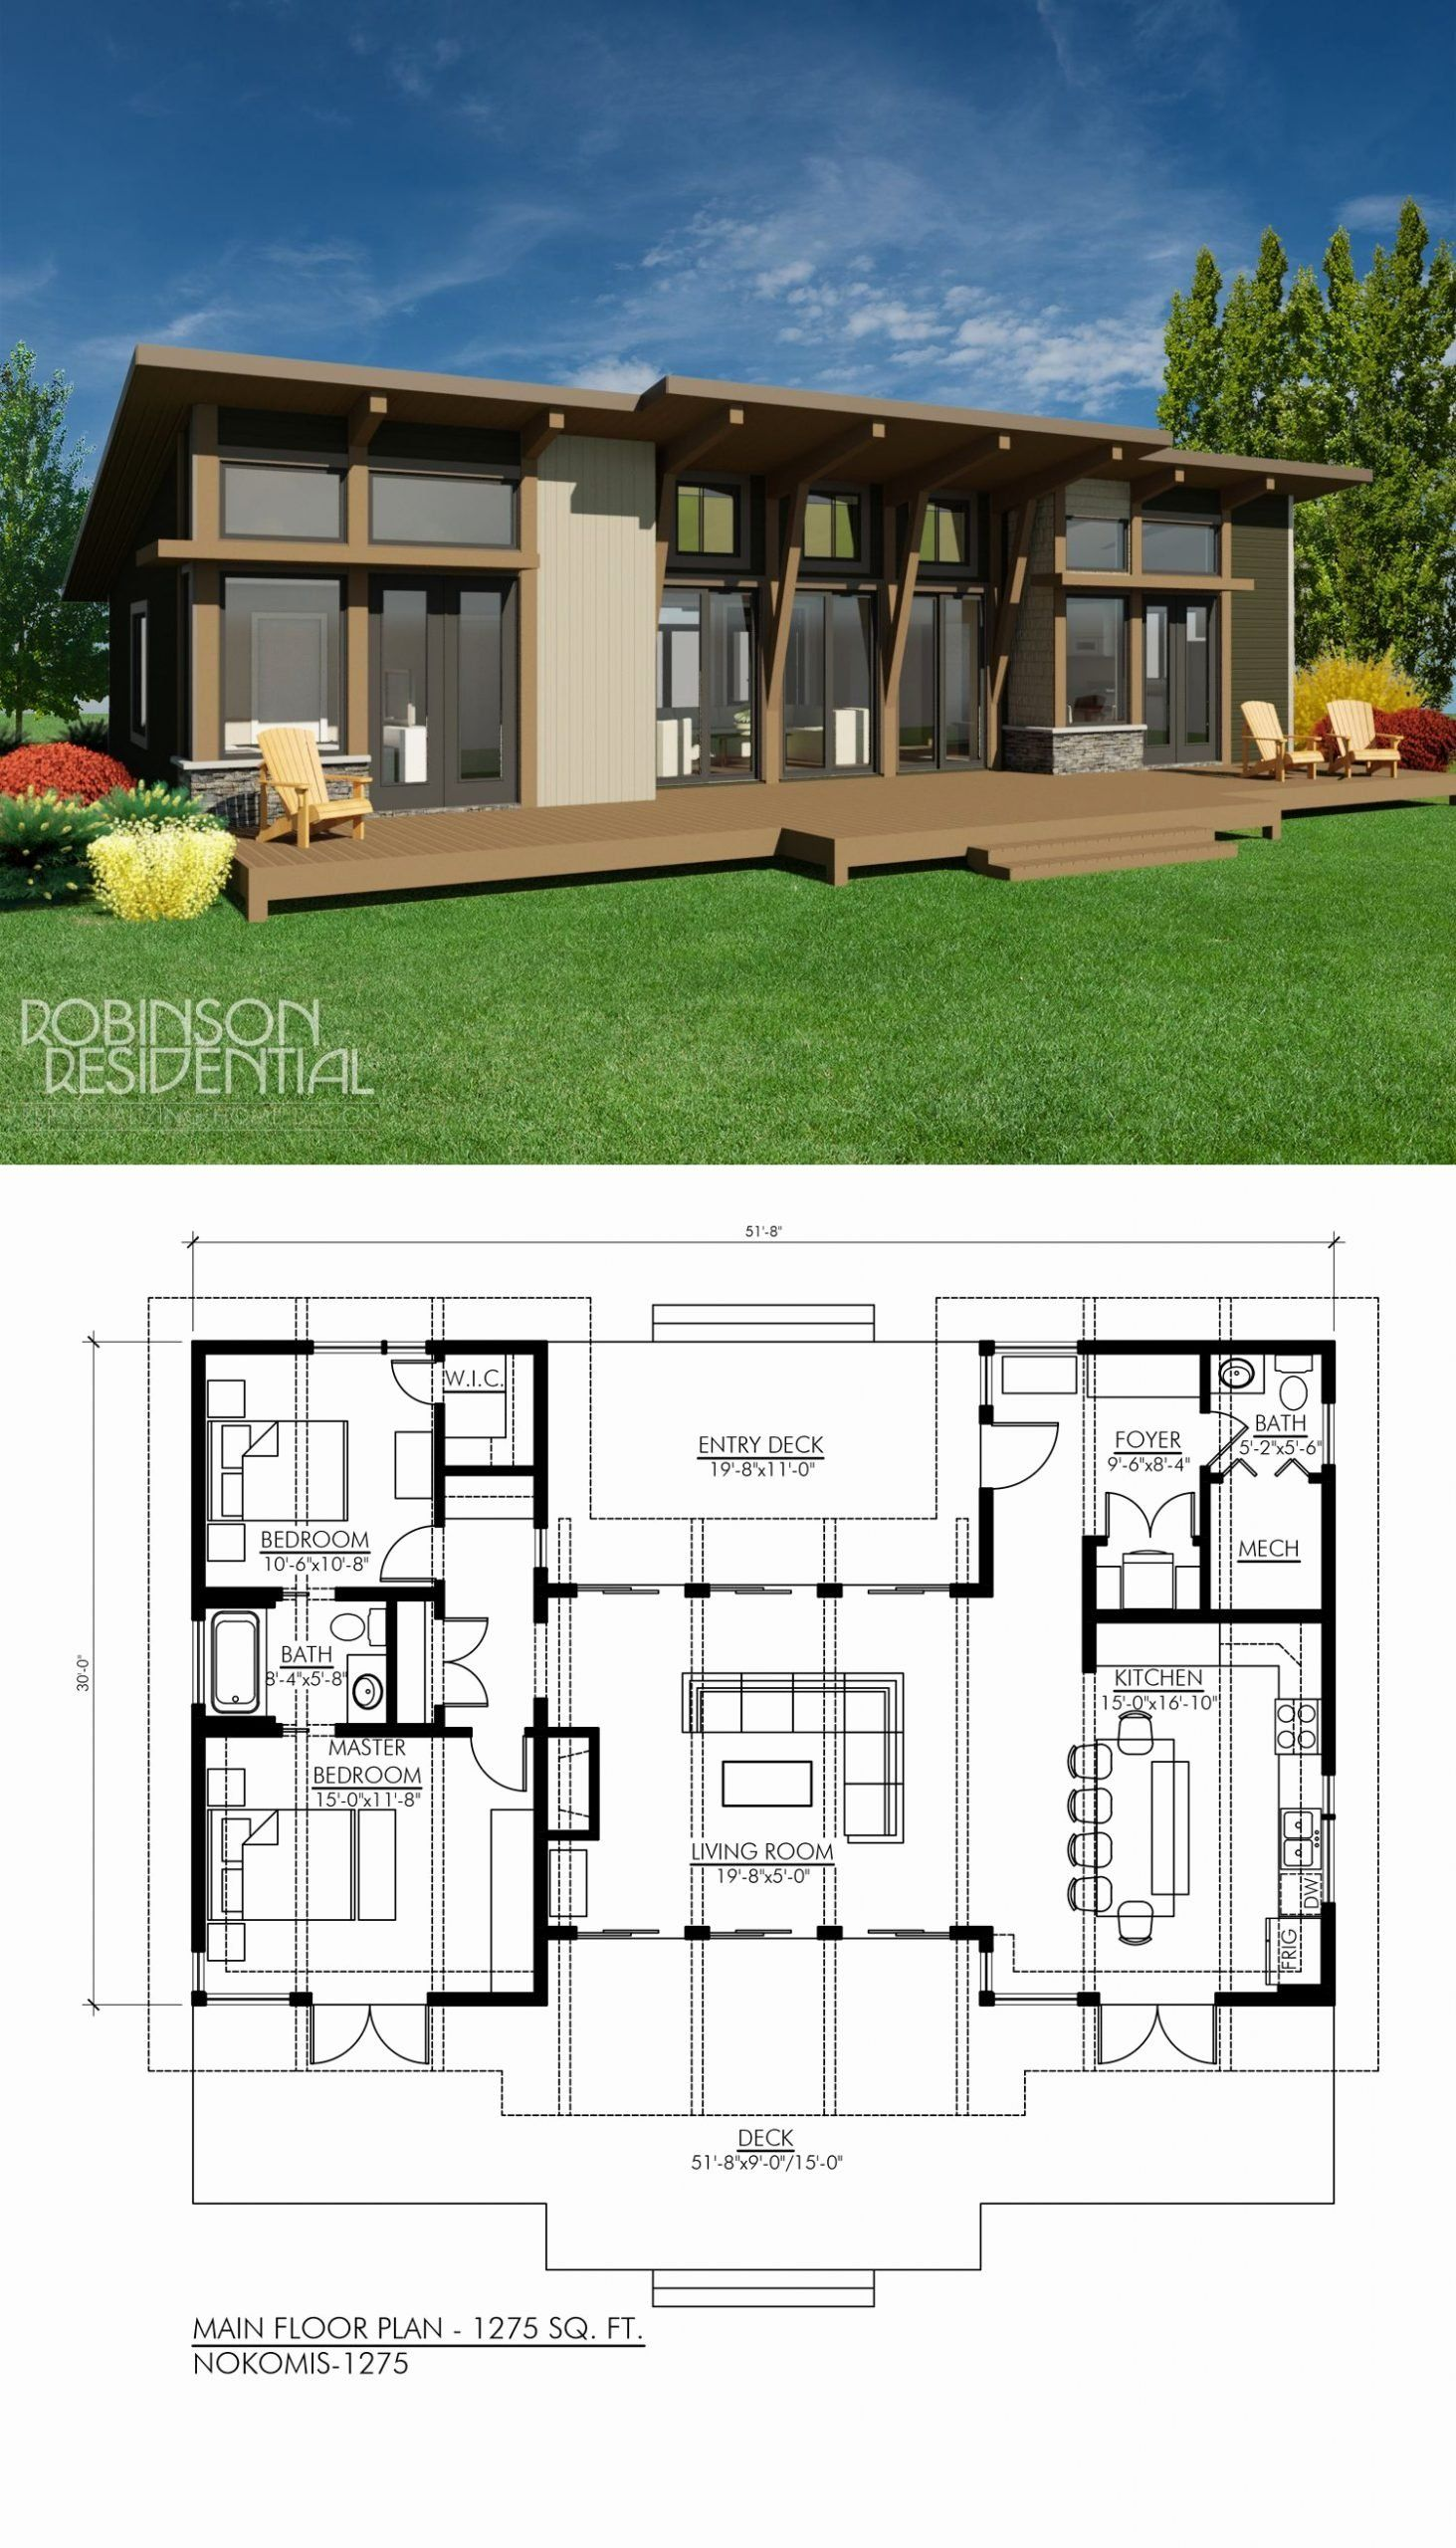 2 Bedroom Contemporary House Plans Elegant Contemporary Nokomis 1303 In 2020 Vacation House Plans Modern Style House Plans Contemporary House Plans